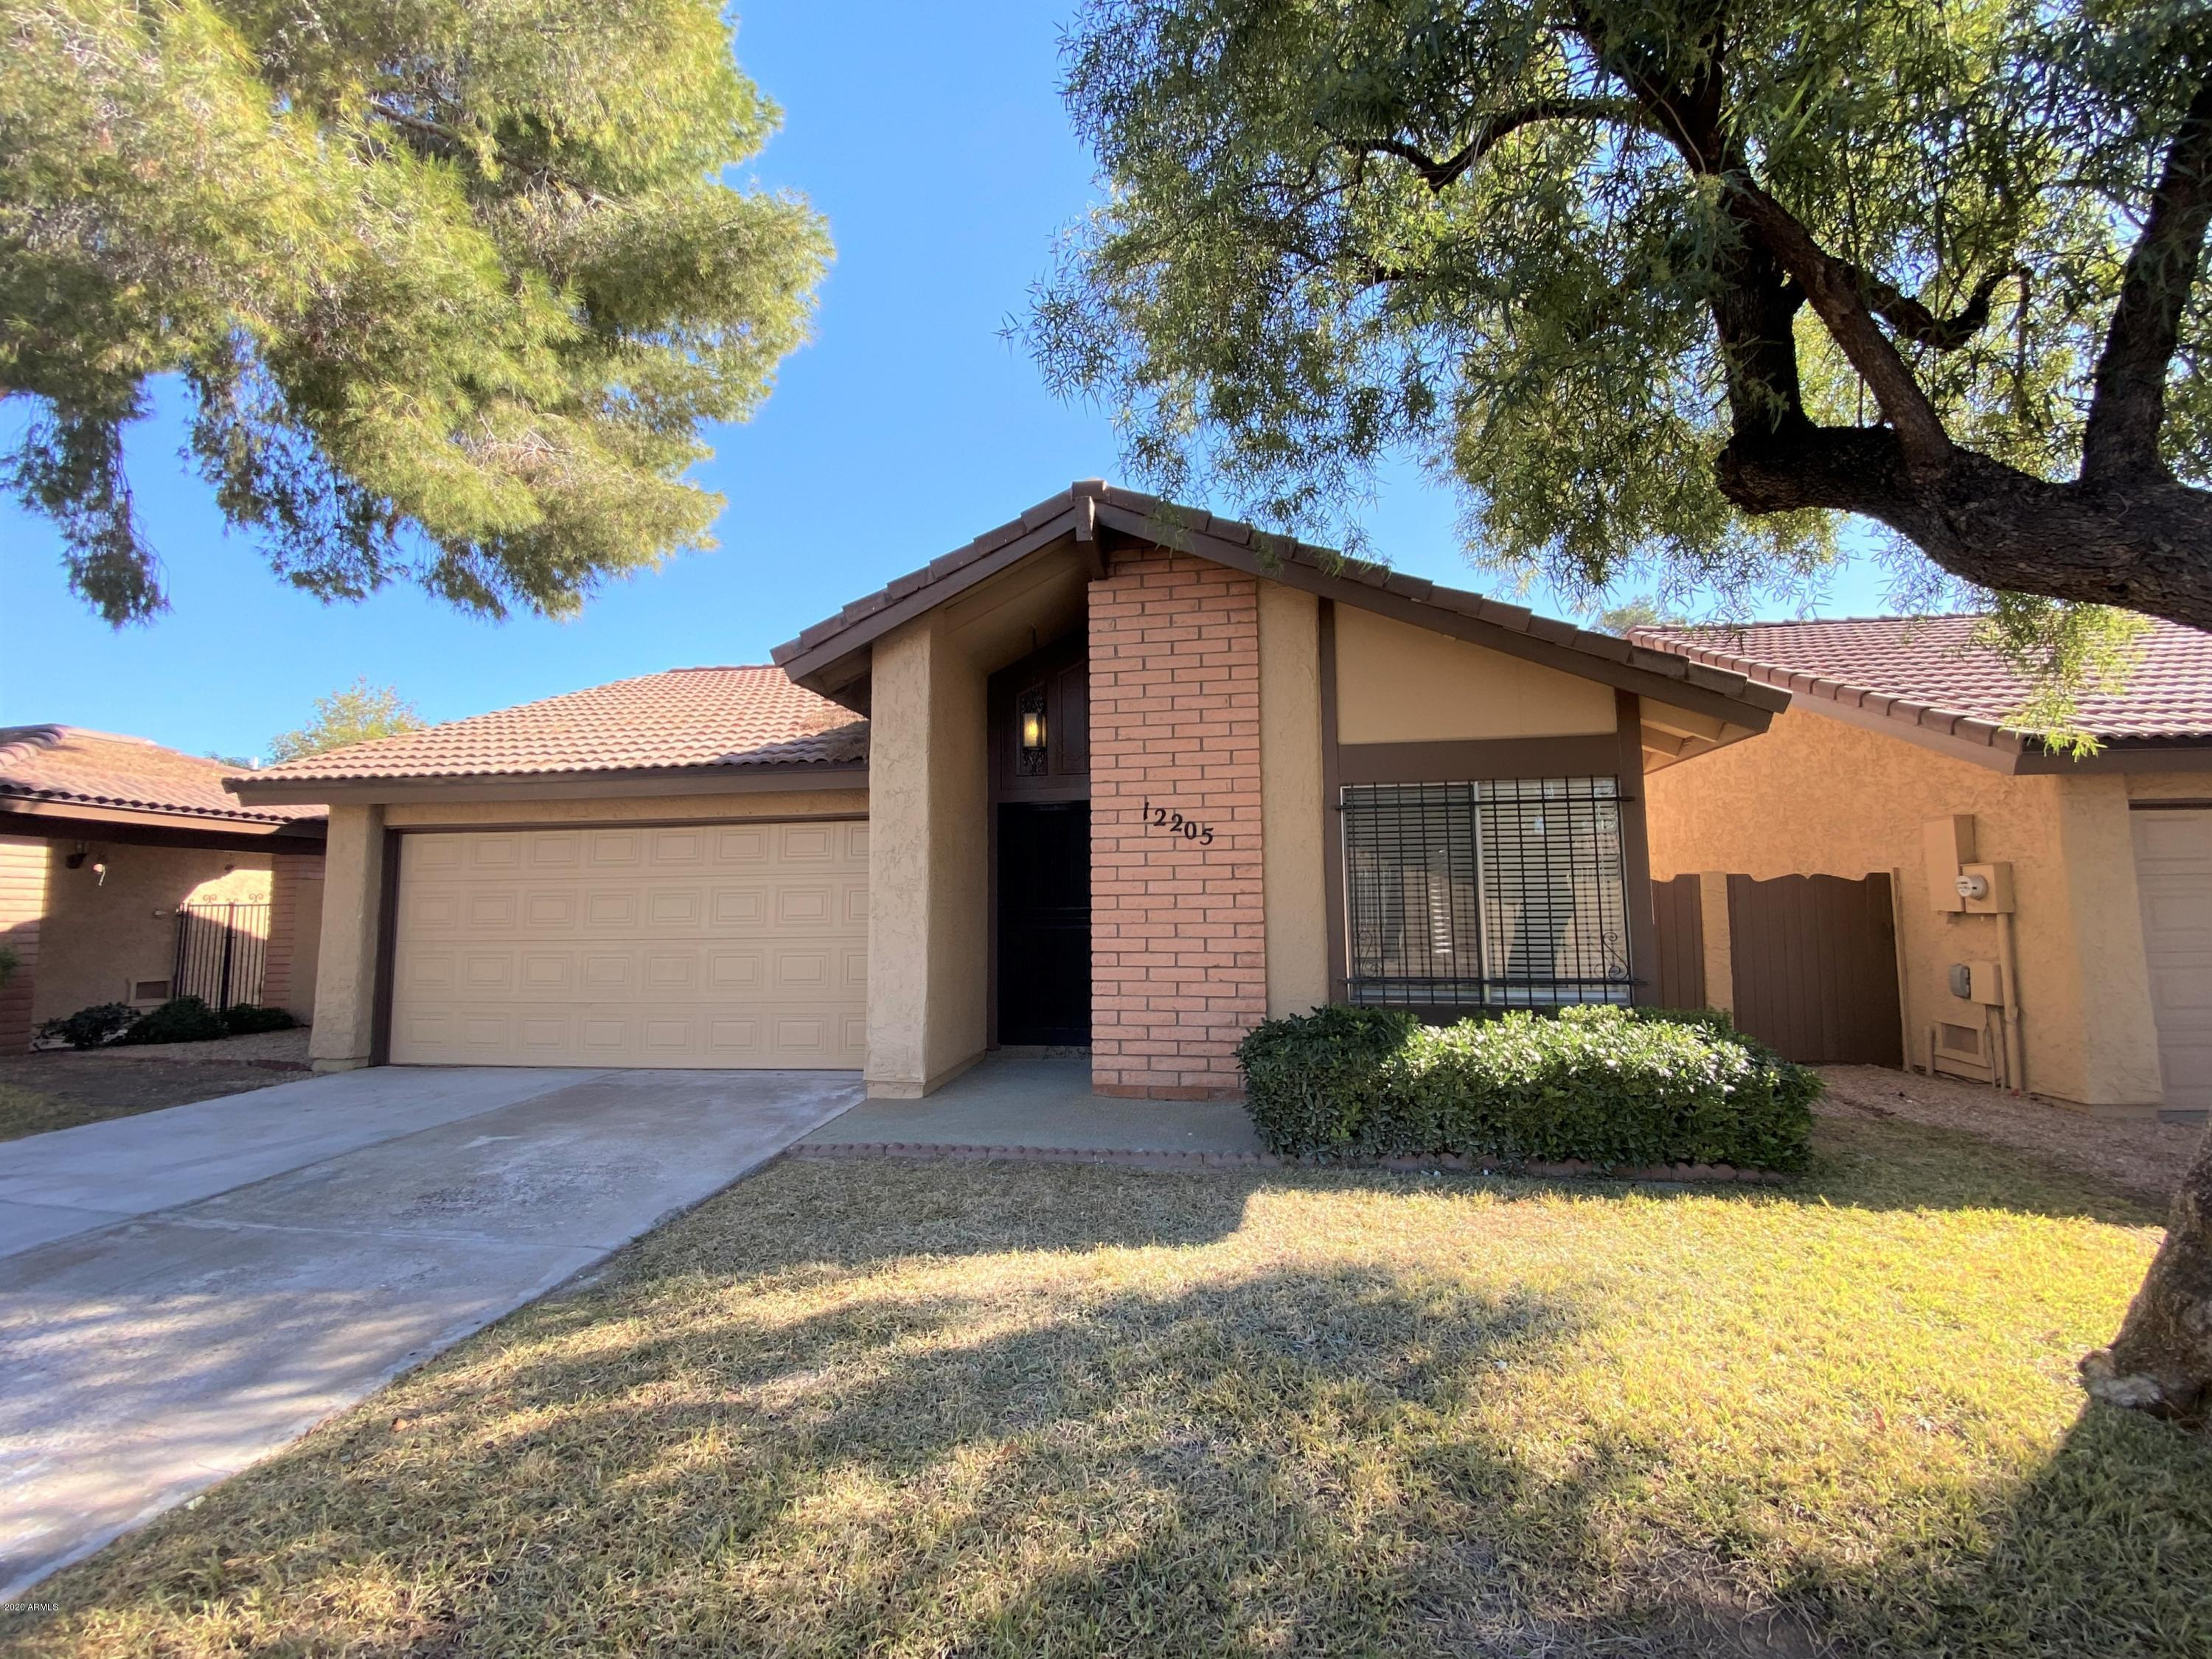 Photo of 12205 S PAIUTE Street, Phoenix, AZ 85044